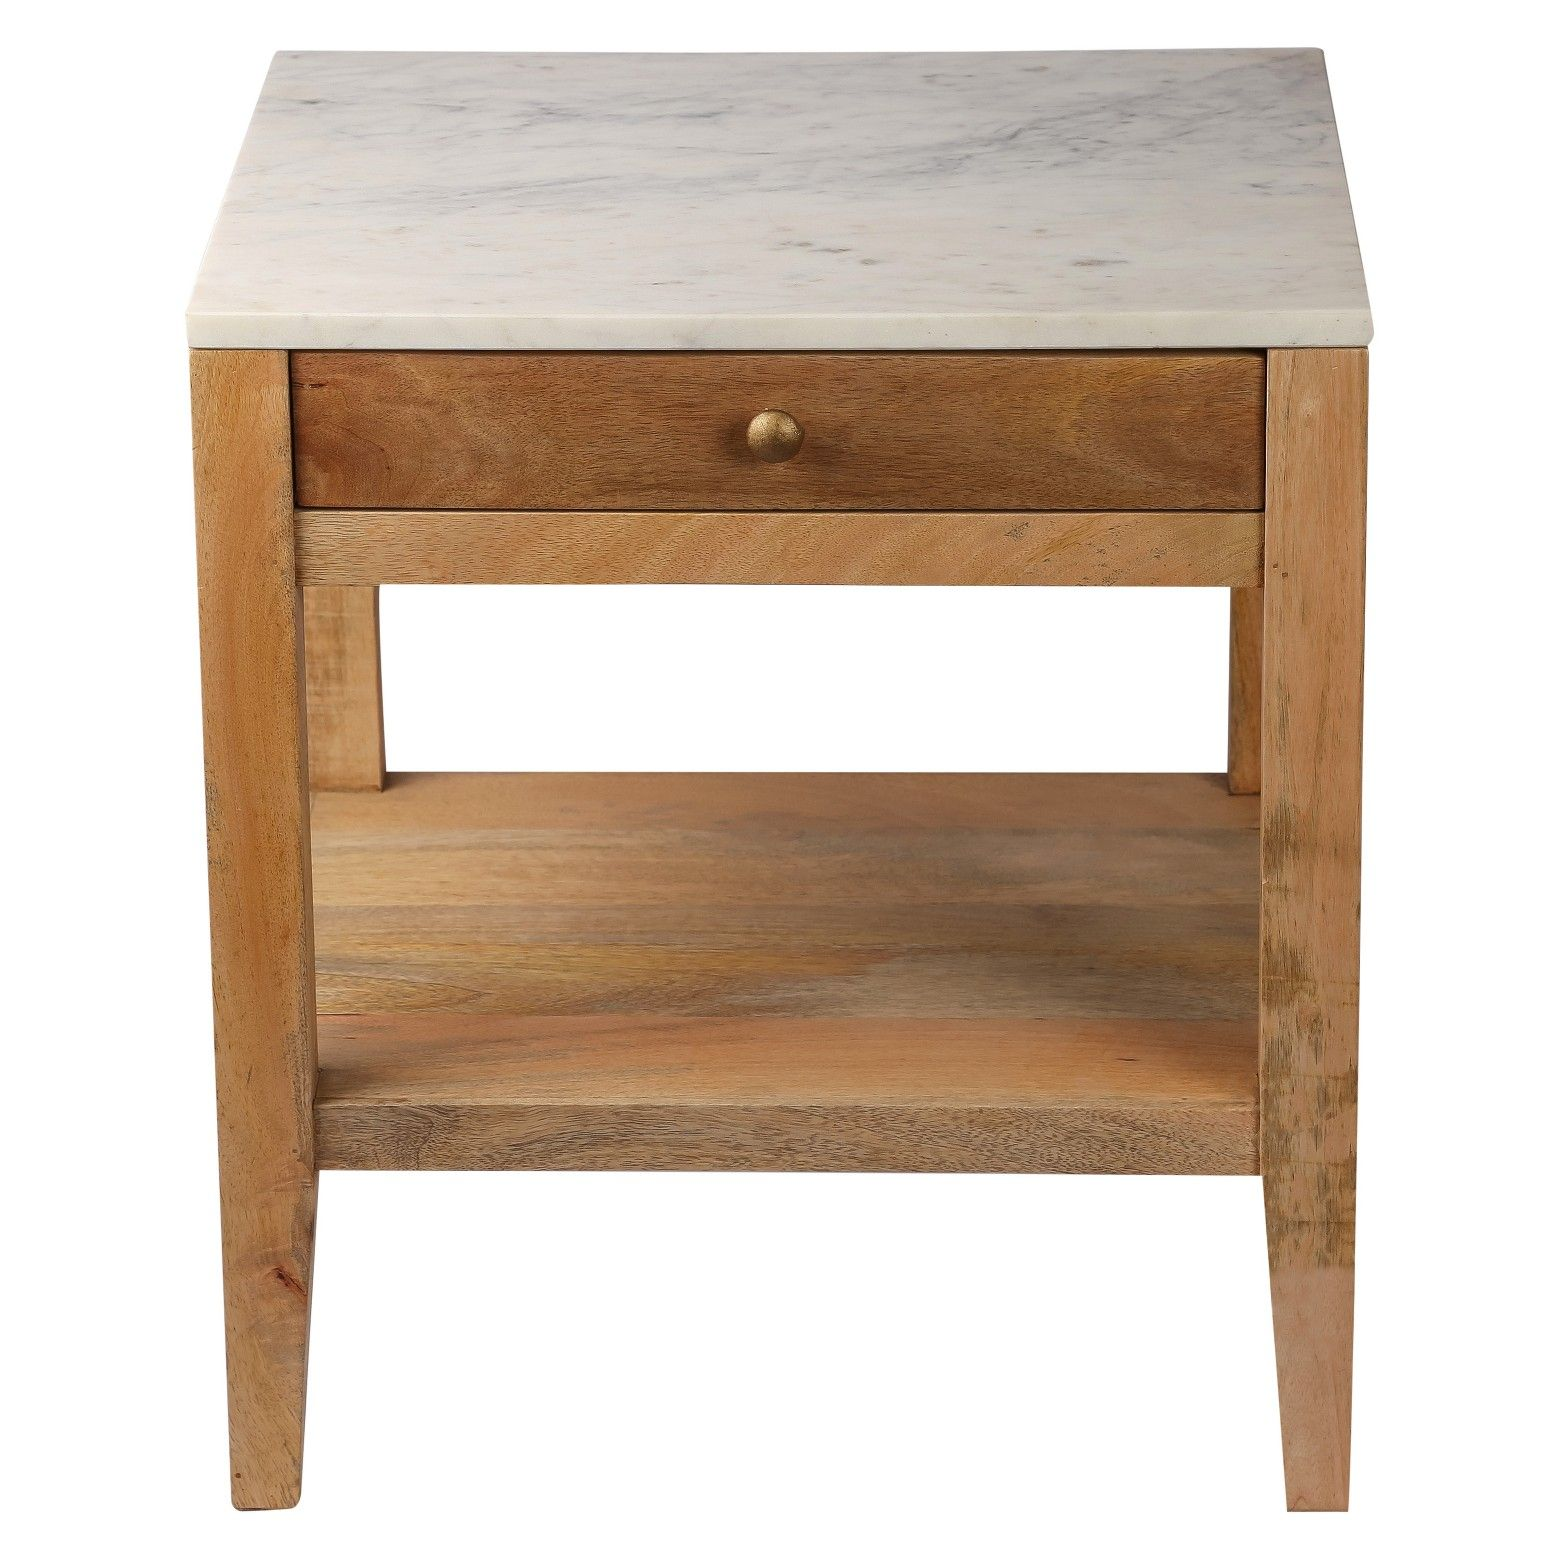 Marble and Wood One Drawer Accent Table Threshold